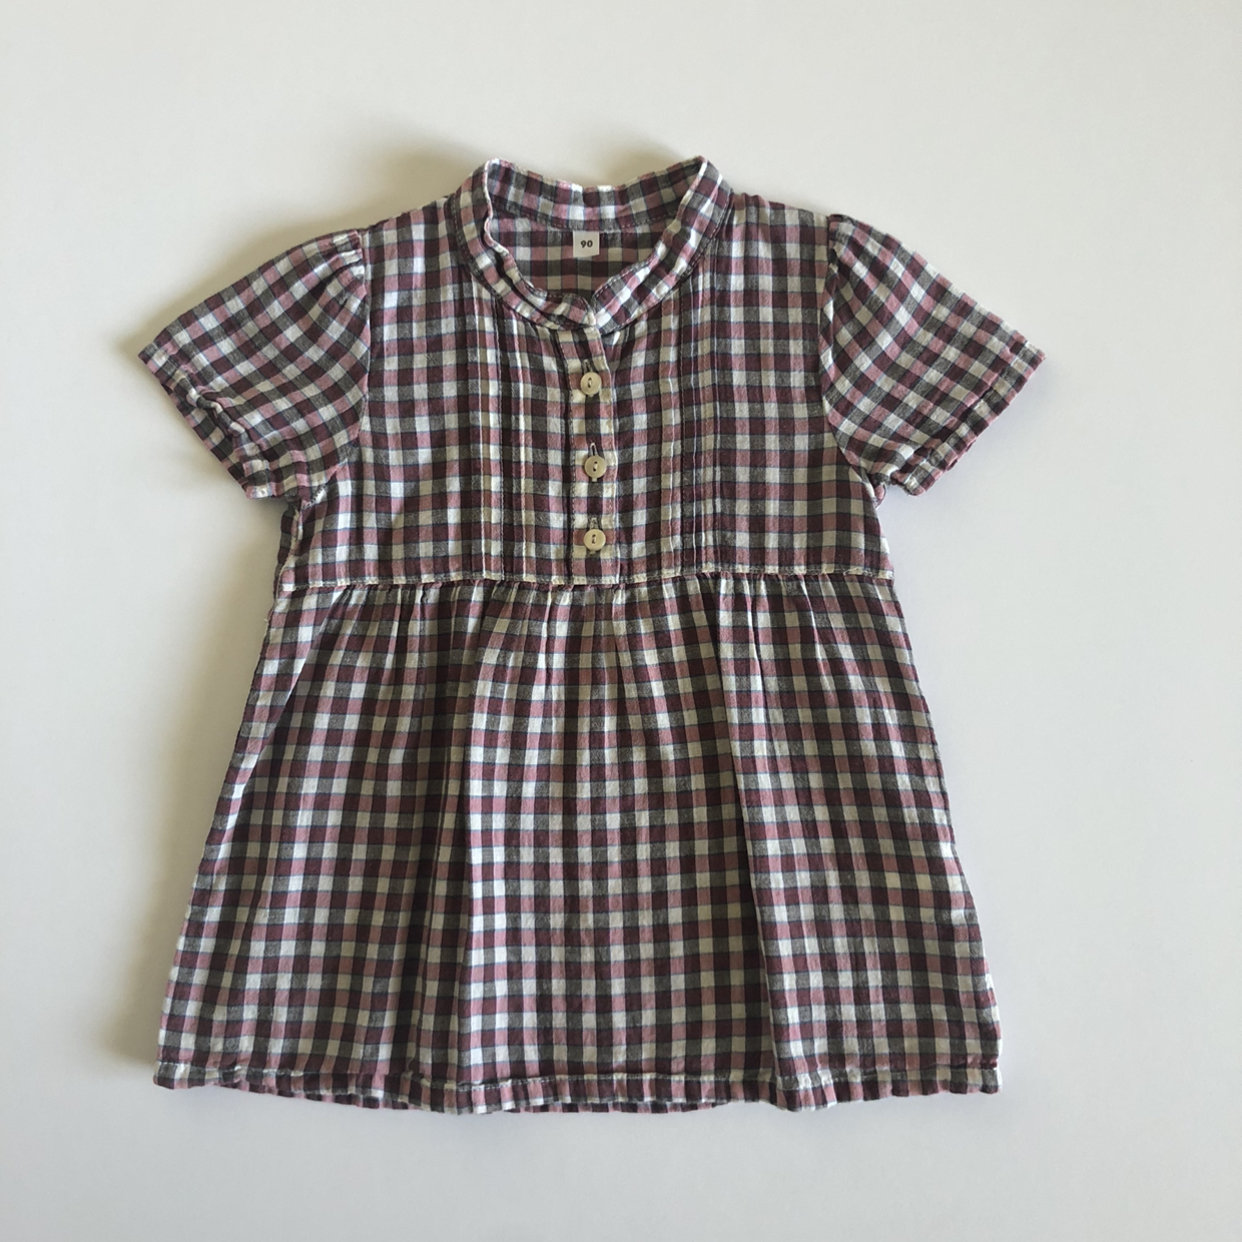 Gingham dress calico dress with elastic top and ribbon ties Crawling Dress in Calico or Gingham Baby dress cotton baby dress